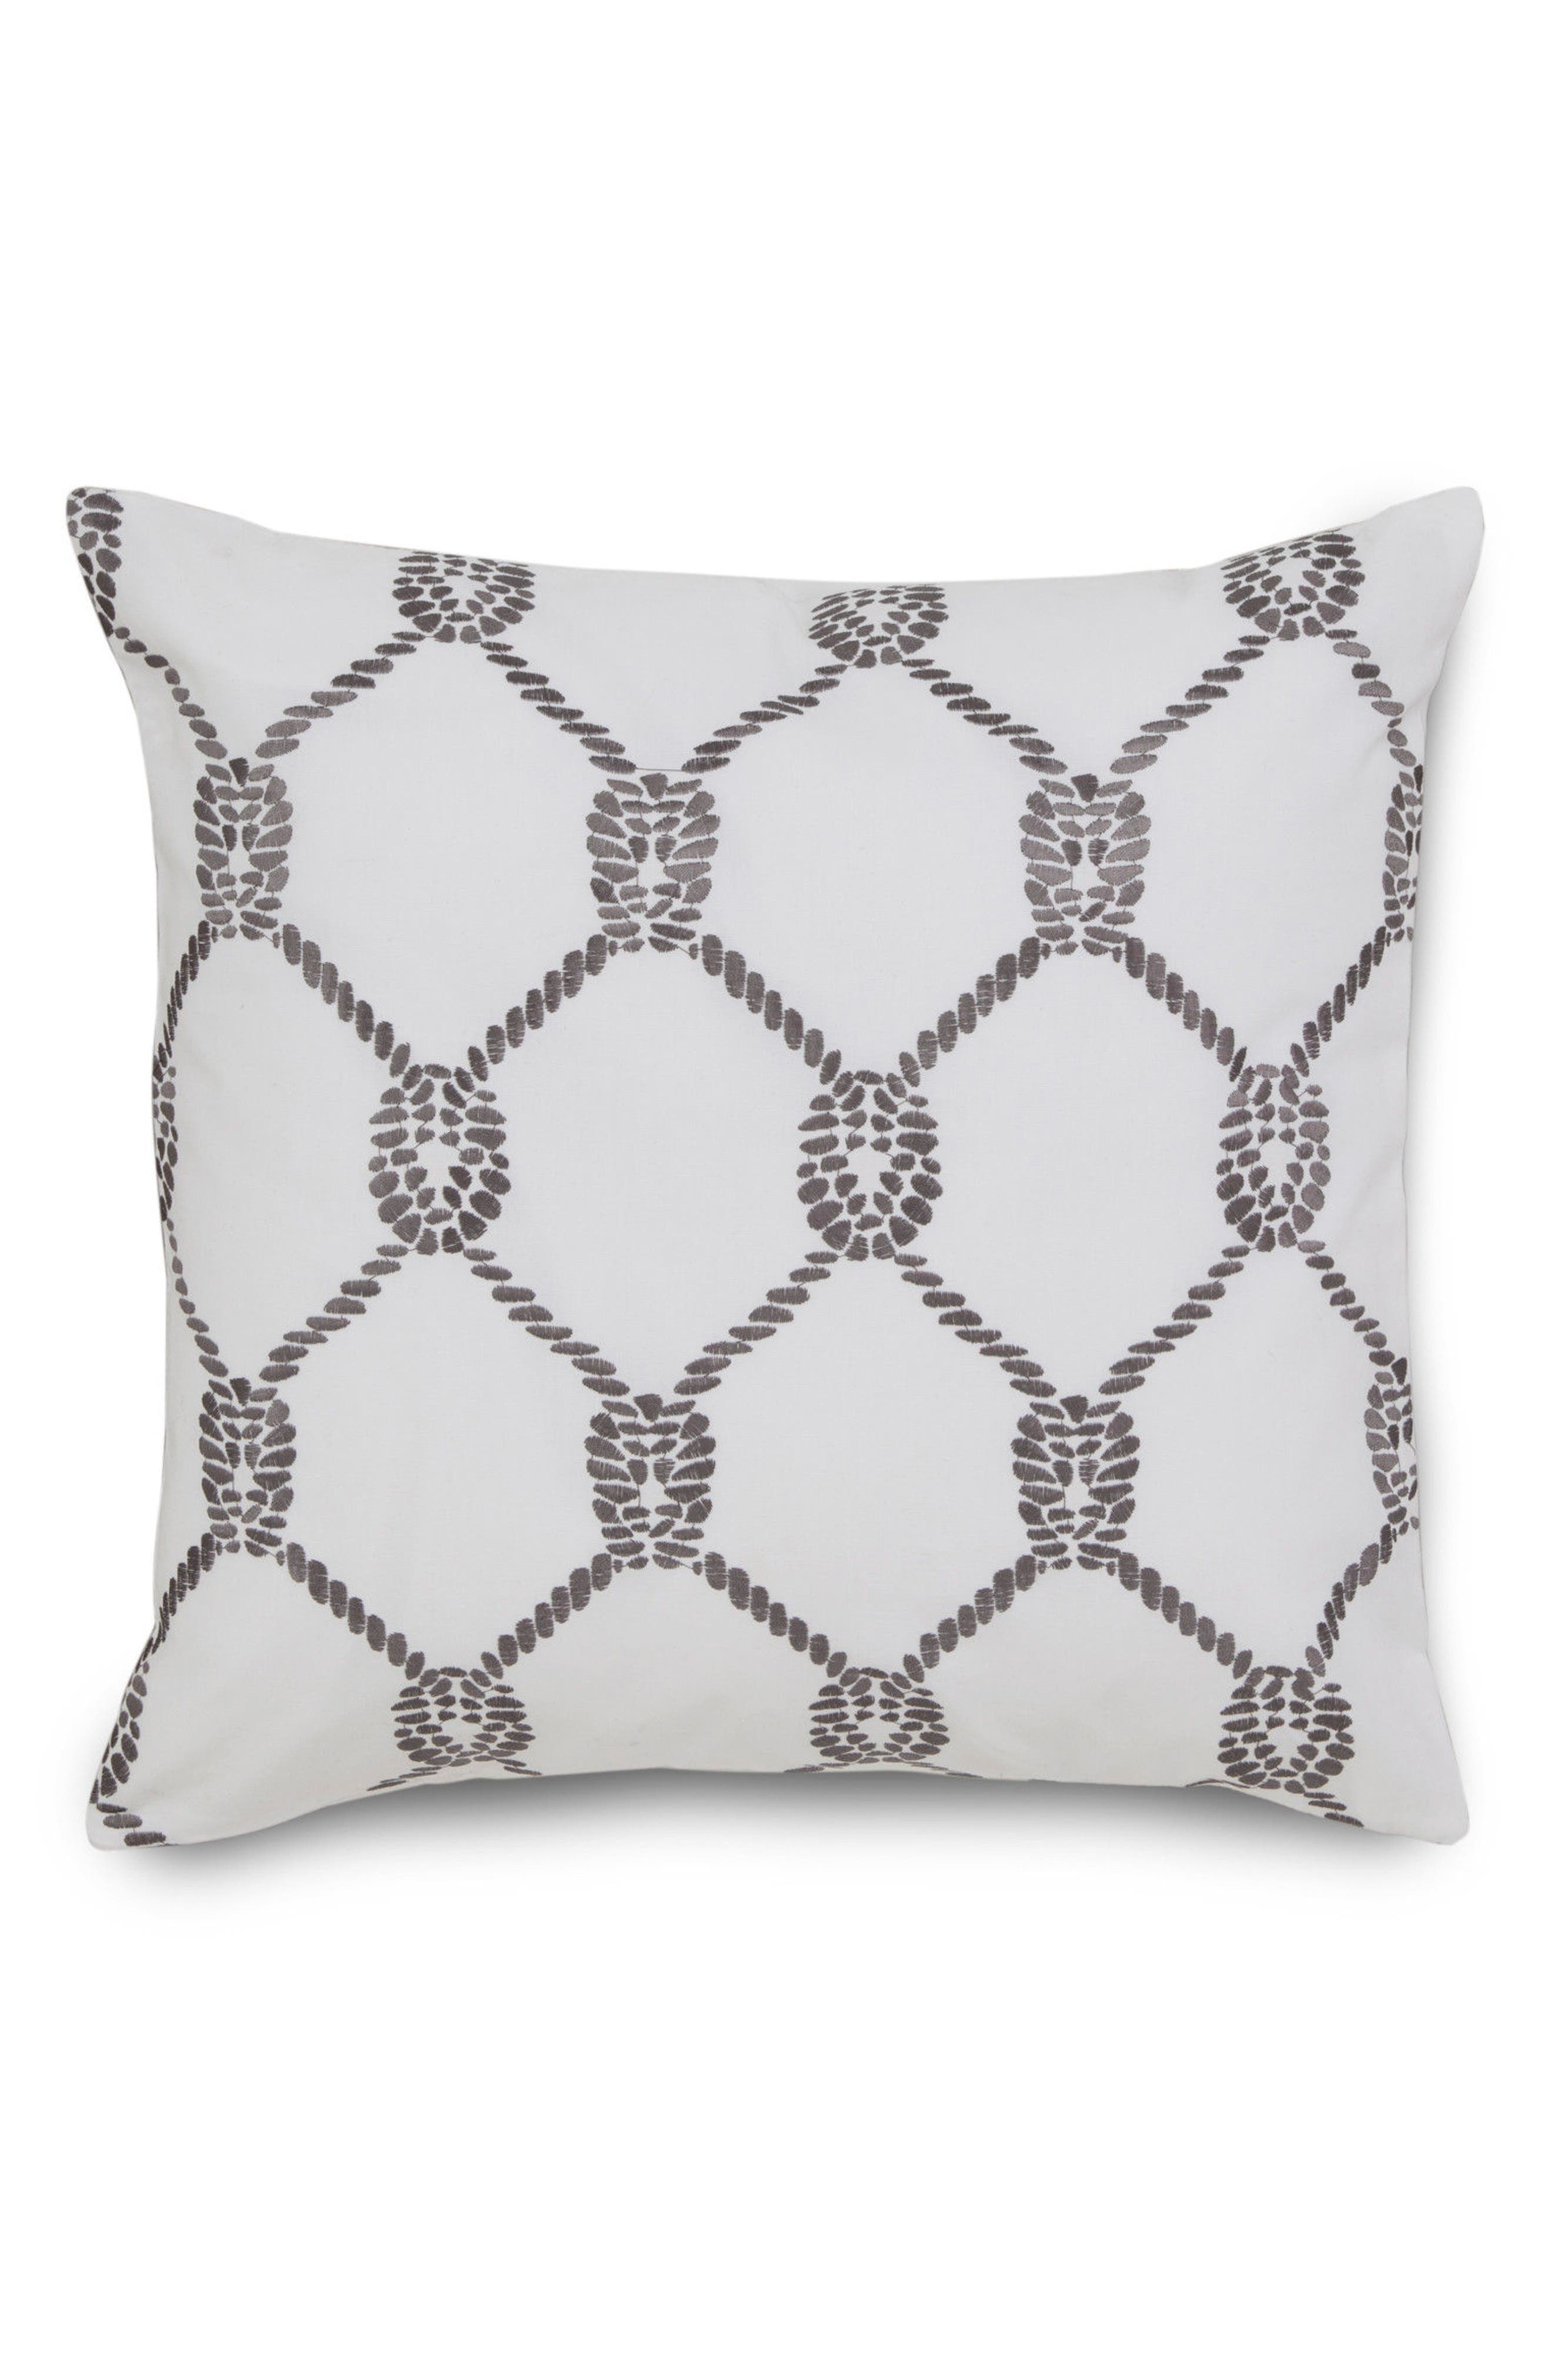 Alternate Image 1 Selected - Southern Tide Breakwater Embroidered Rope Accent Pillow